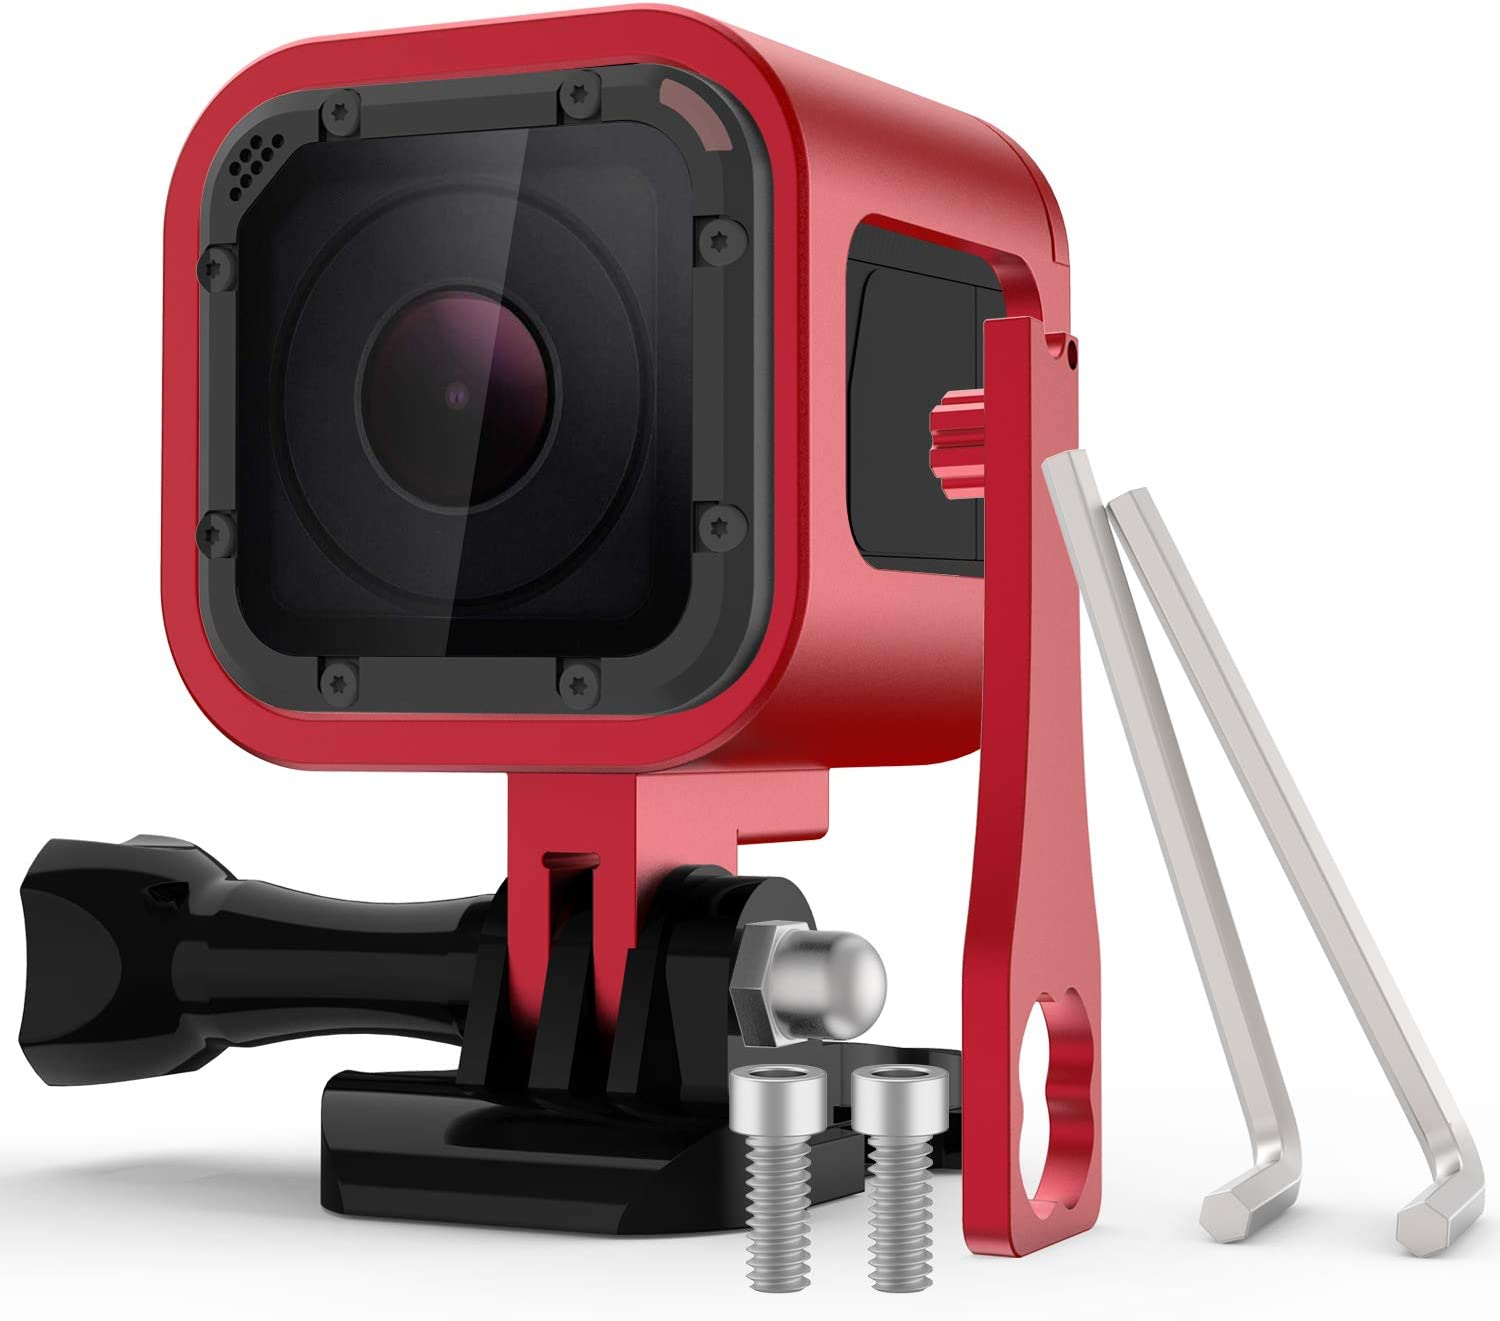 Nechkitter Aluminum Frame Housing Case for GoPro Hero 5 Session / 4 Session/Hero Session, CNC Aluminum Alloy Solid Protective Case with Wrench –Red